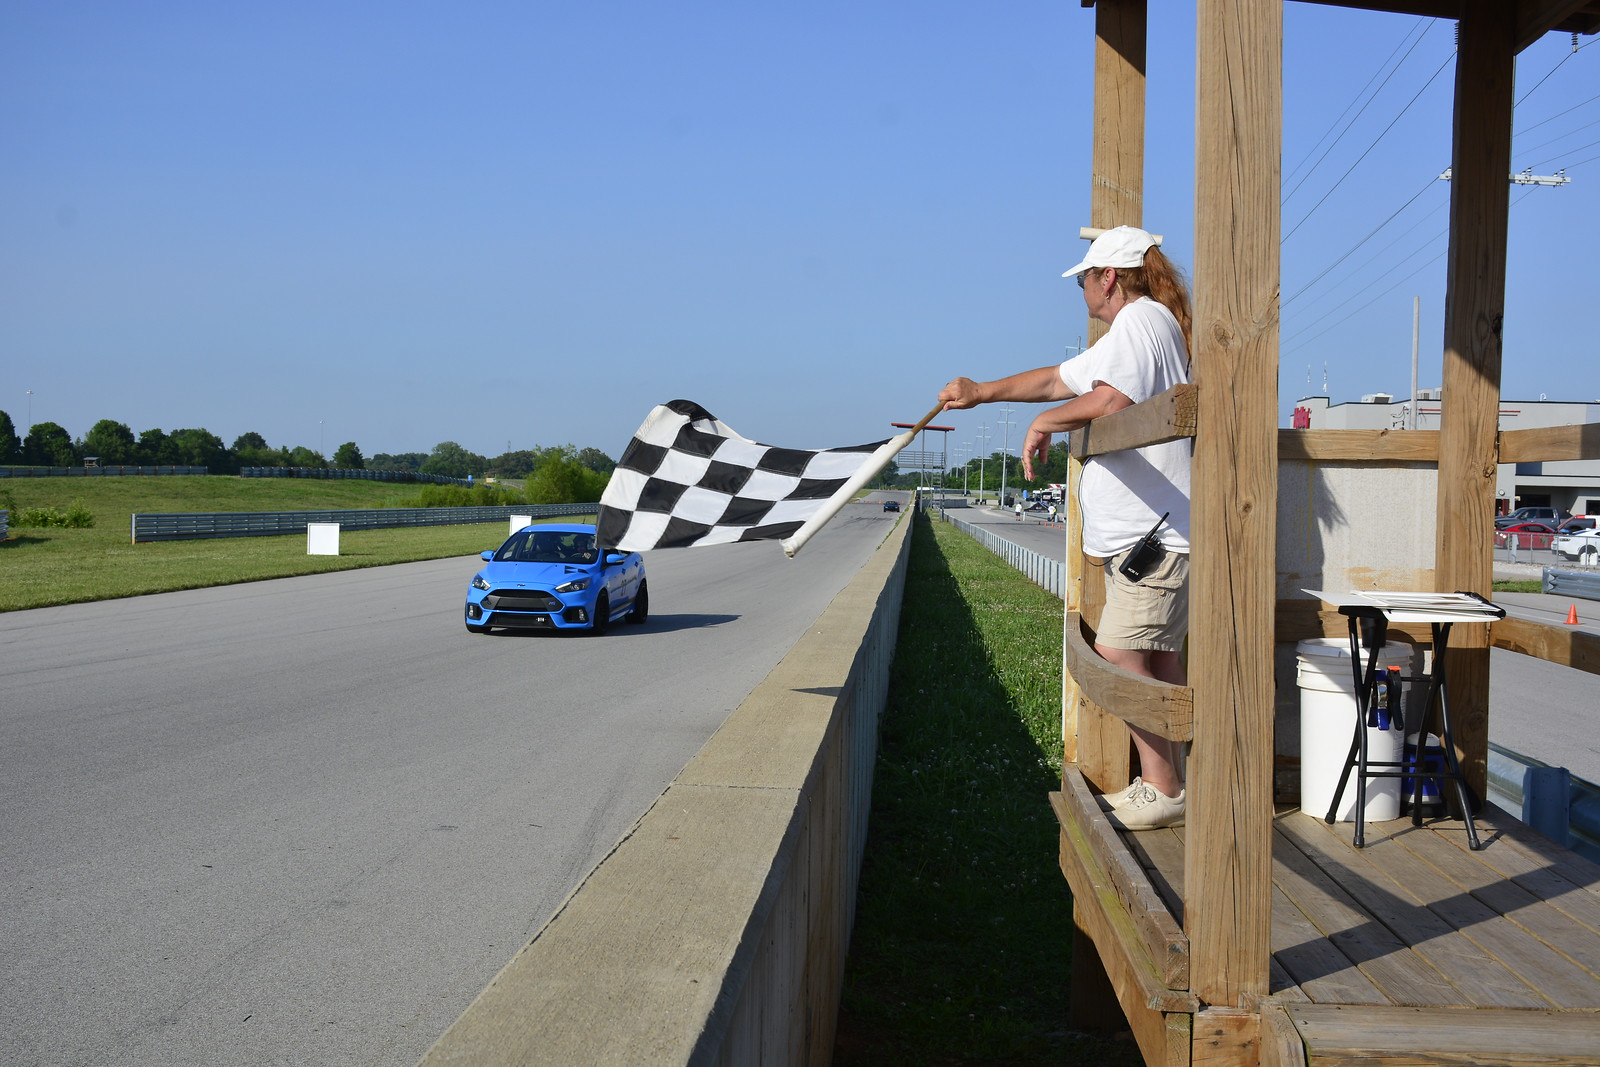 Ford Focus crossing the finish line